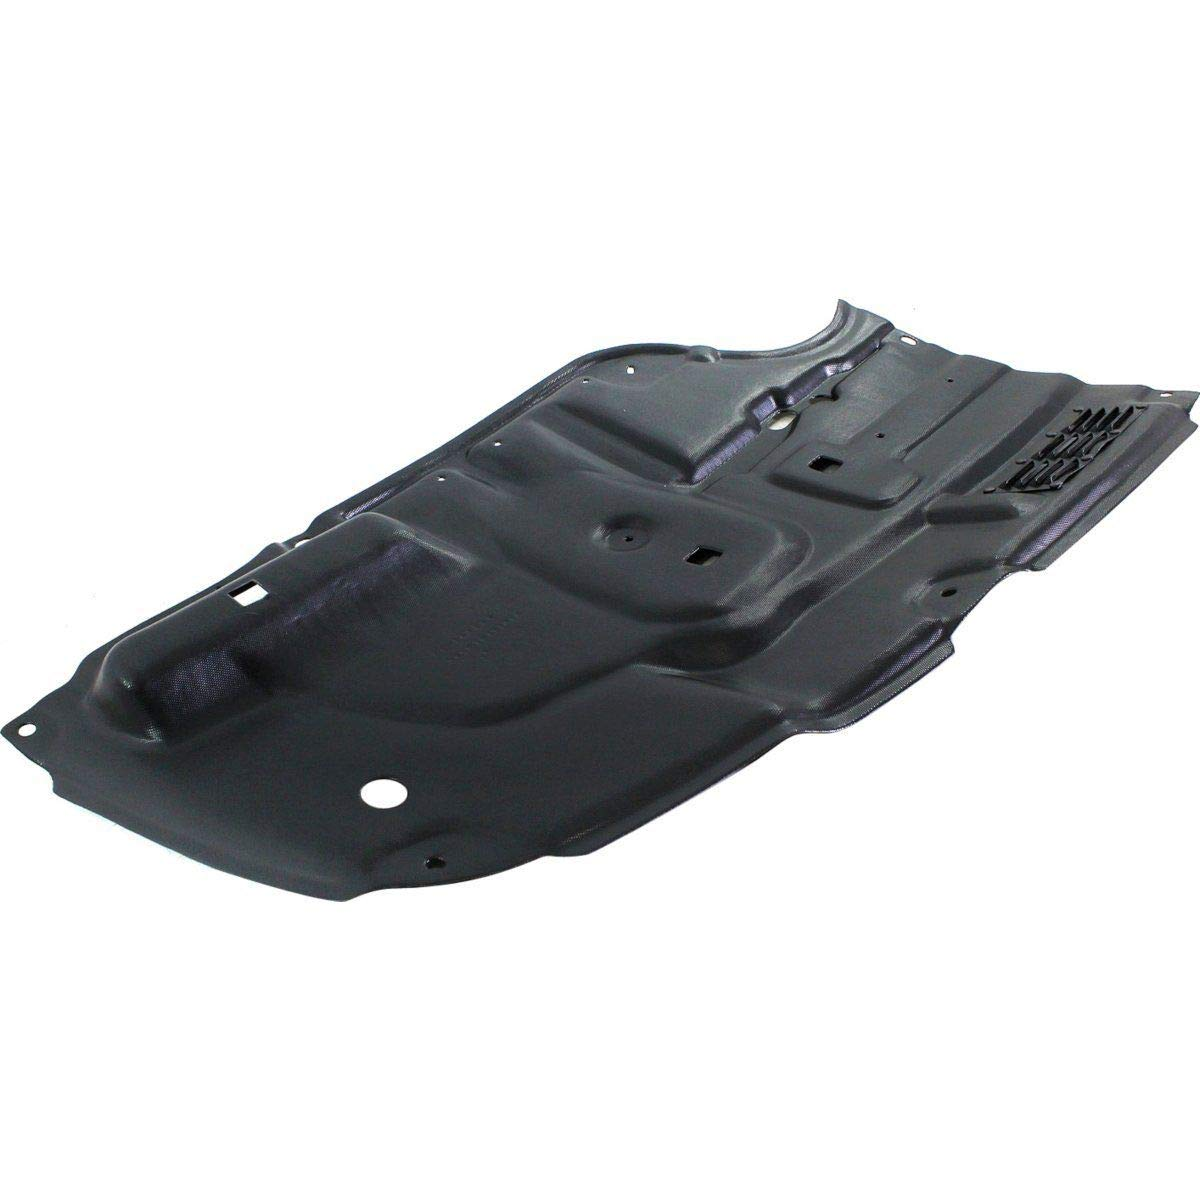 New Left Driver Side Engine Splash Shield For 2011-2012 Toyota Avalon Under Cover TO1228172 5144207020